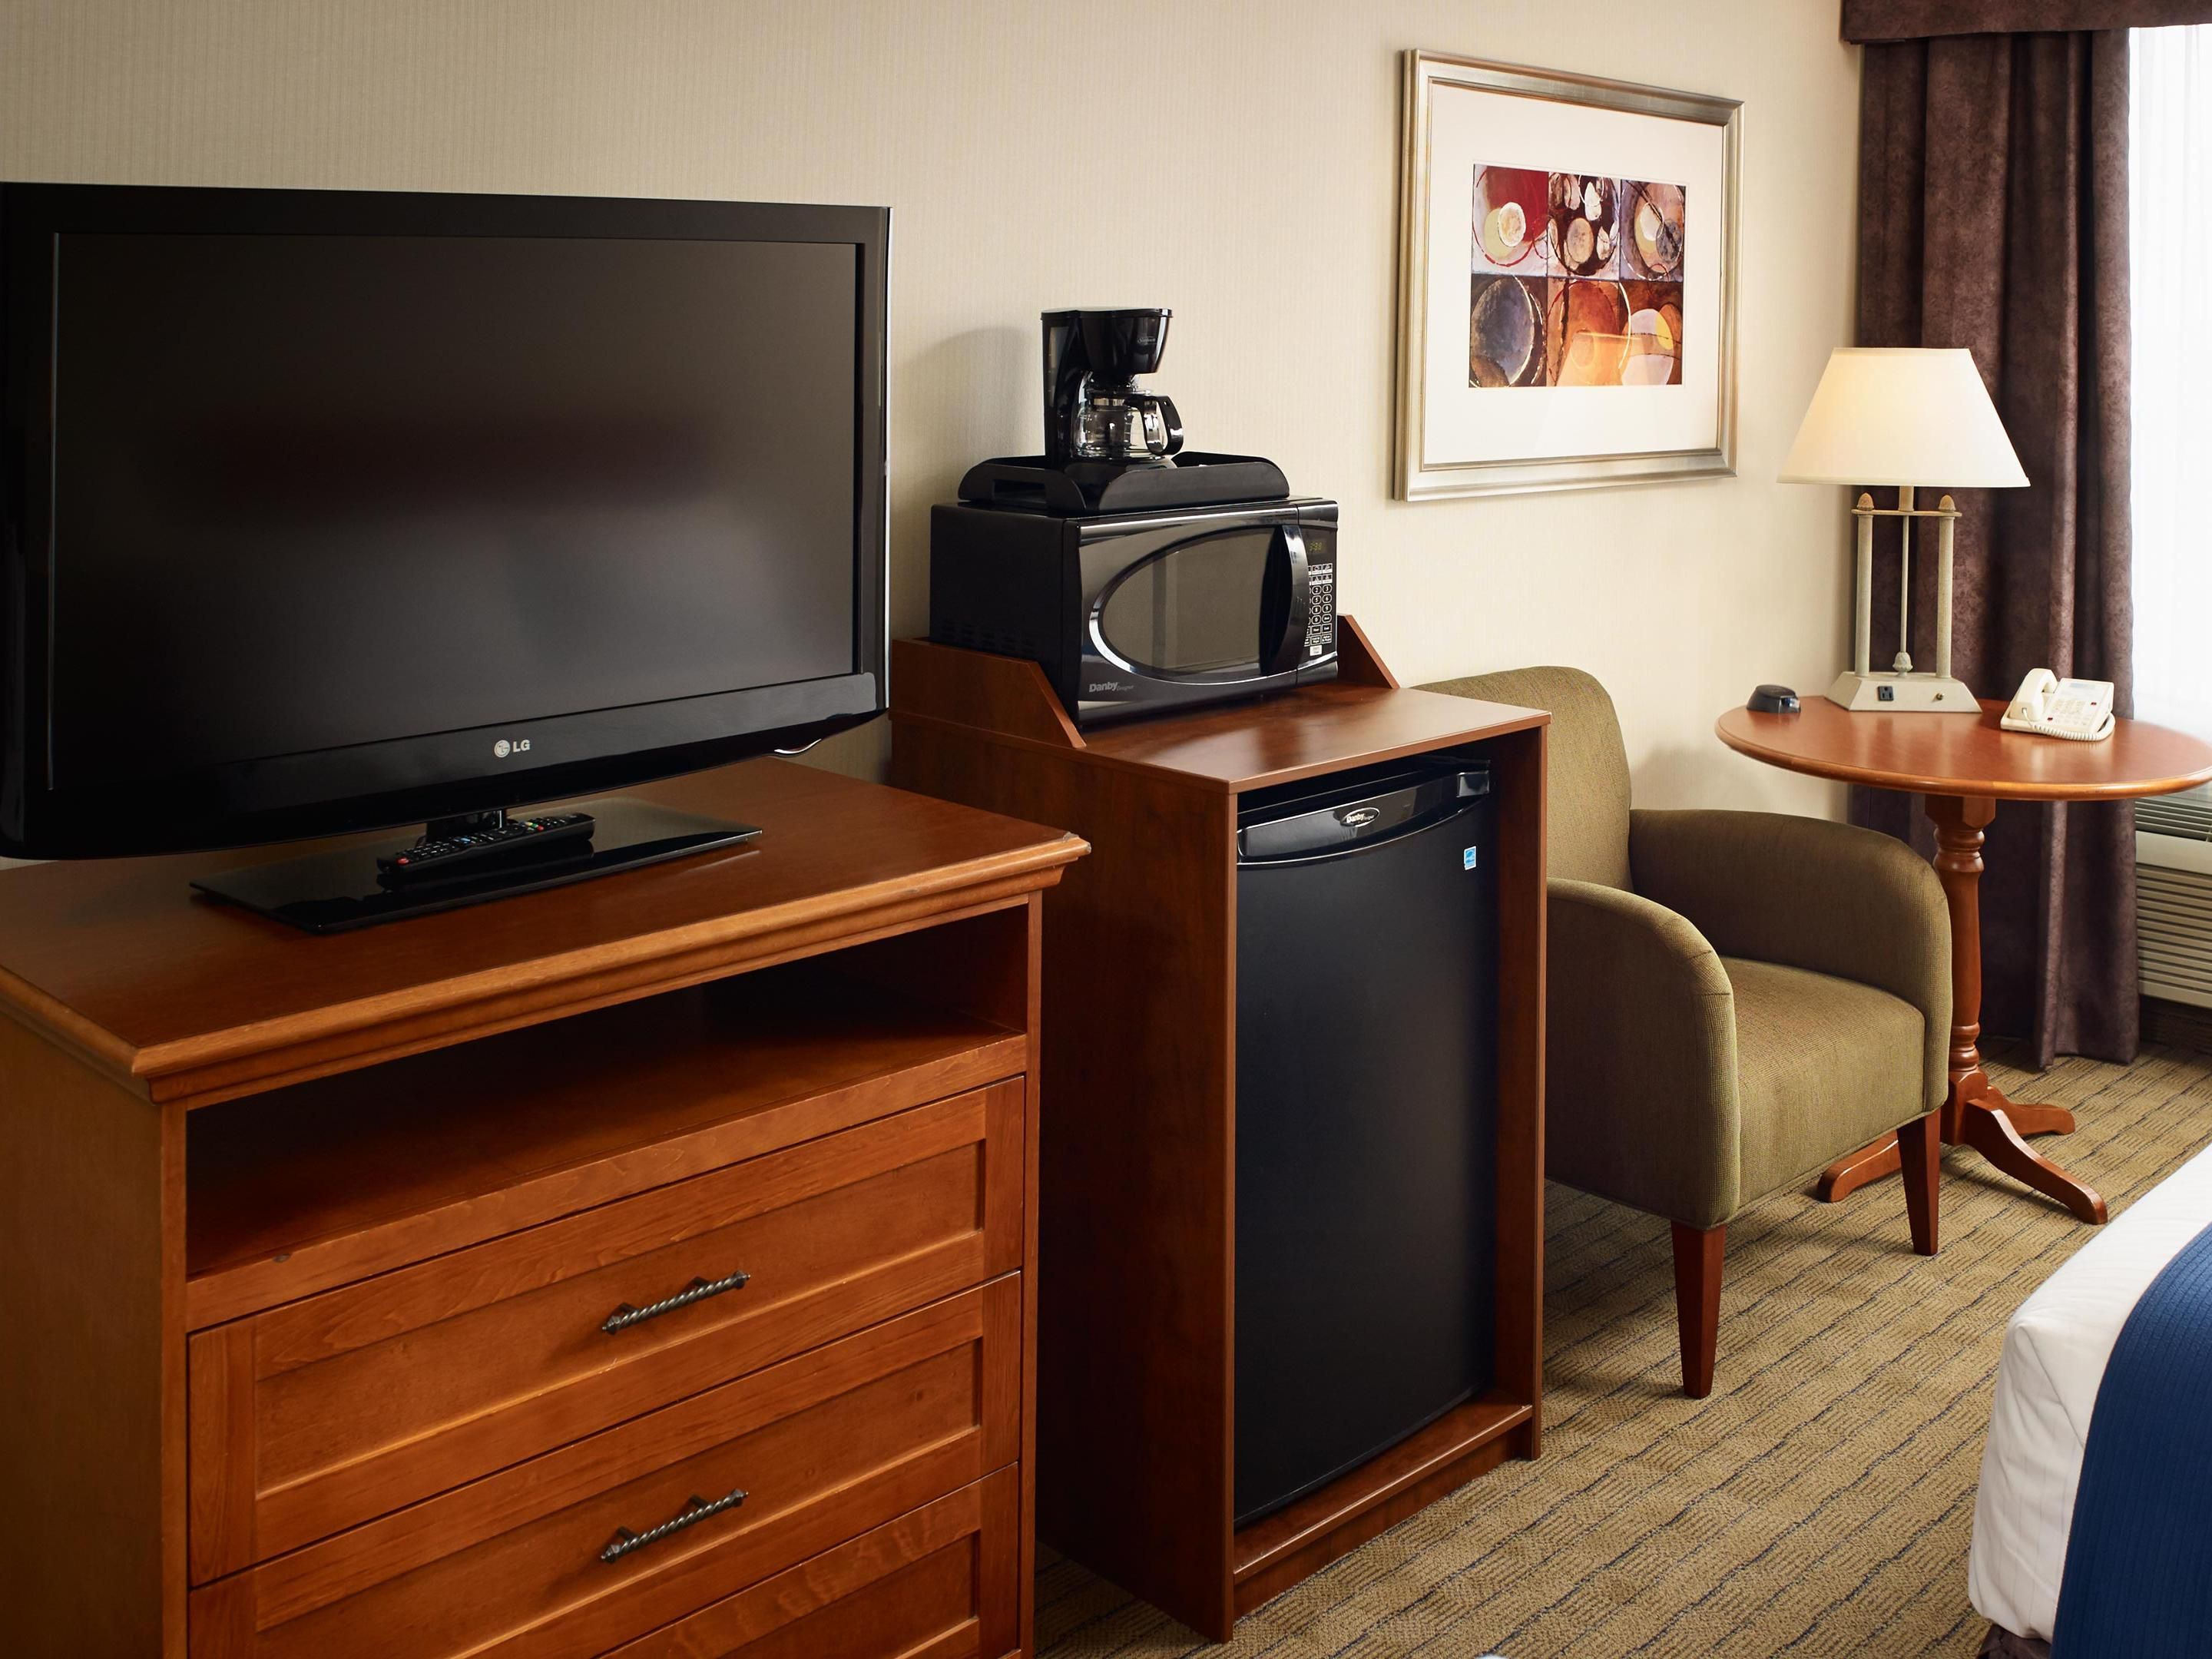 Room Amenities include a microwave, refrigerator and a big LCD TV